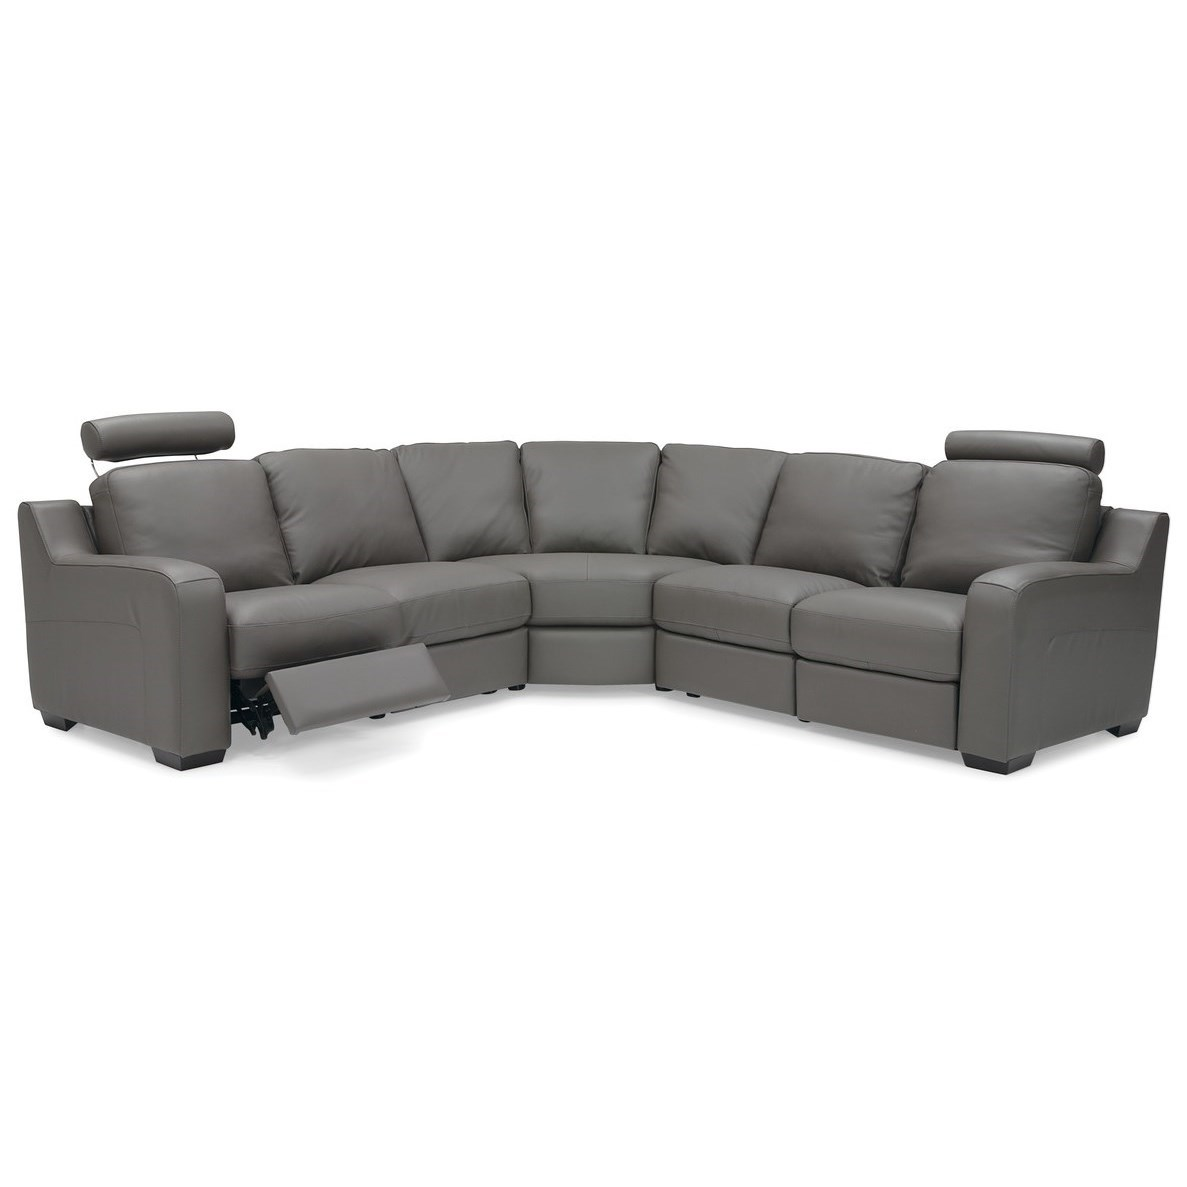 Flex 5-Seat Reclining Sectional Sofa by Palliser at Jordan's Home Furnishings